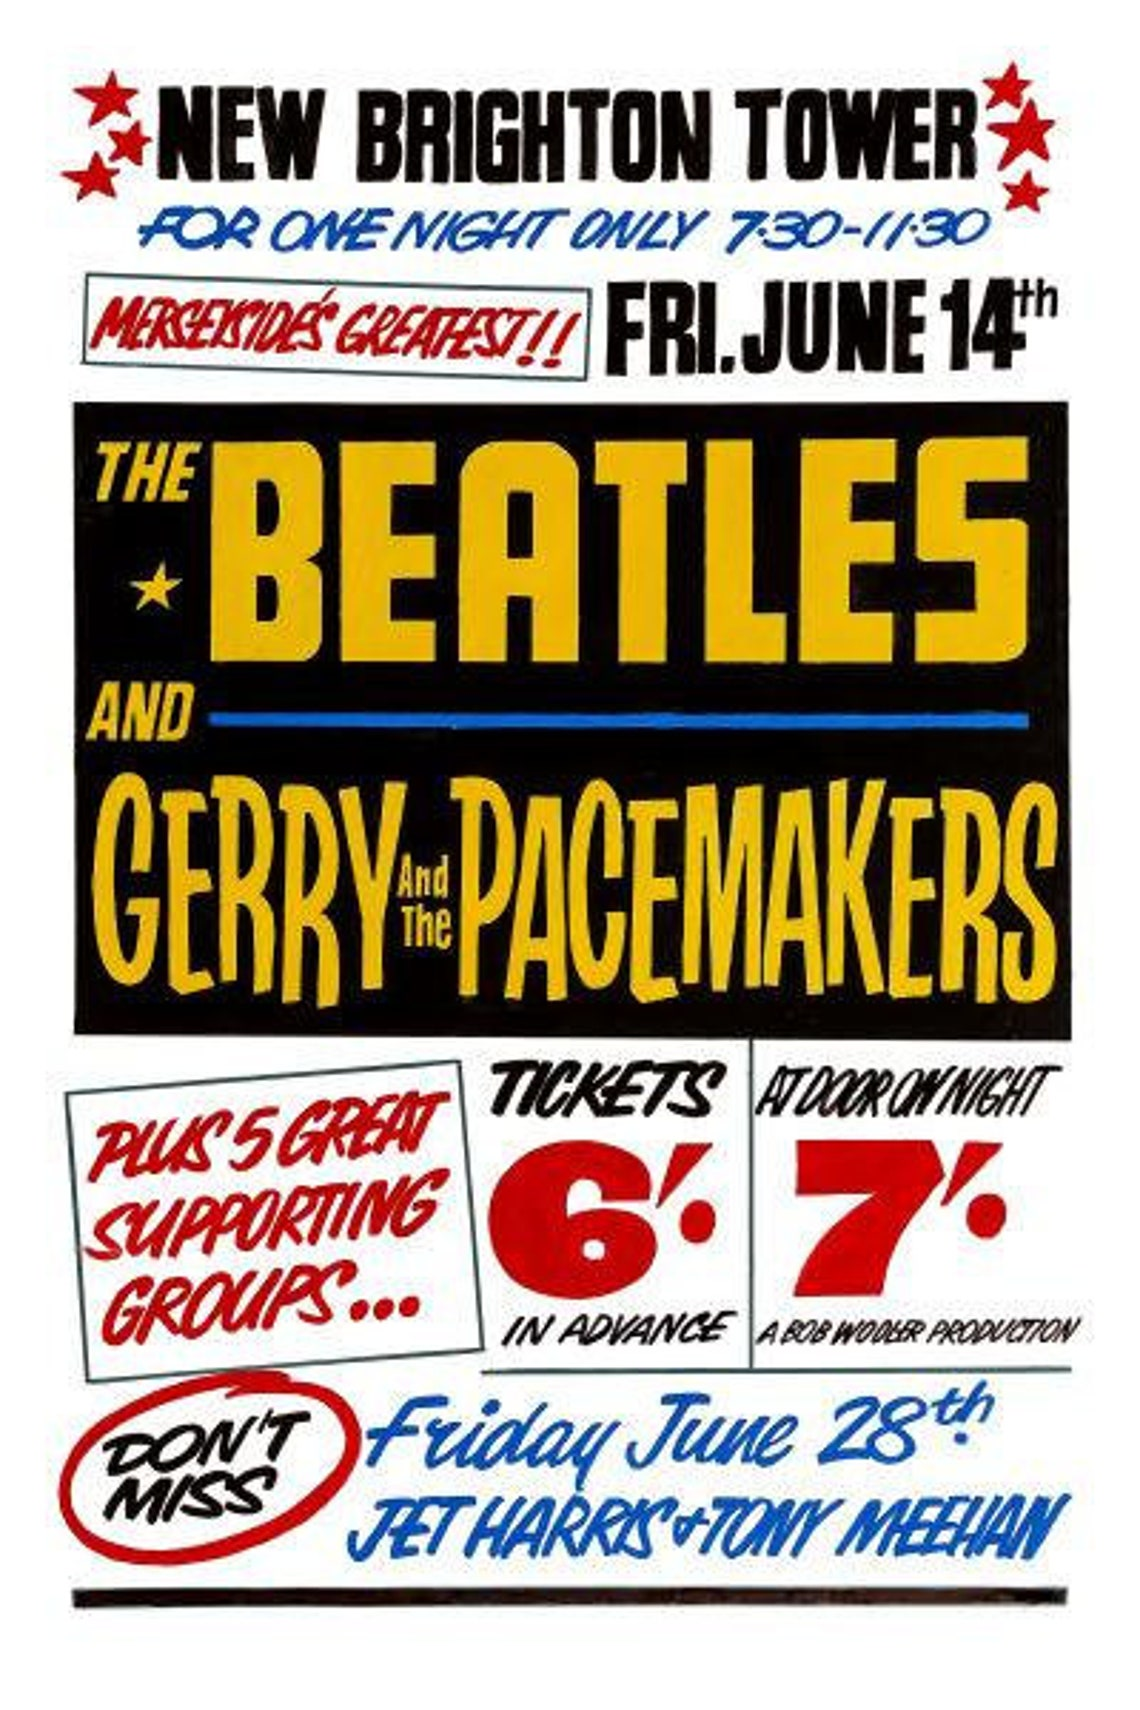 The Beatles Poster Tower Ballroom Concert A4 Print Vintage image 1